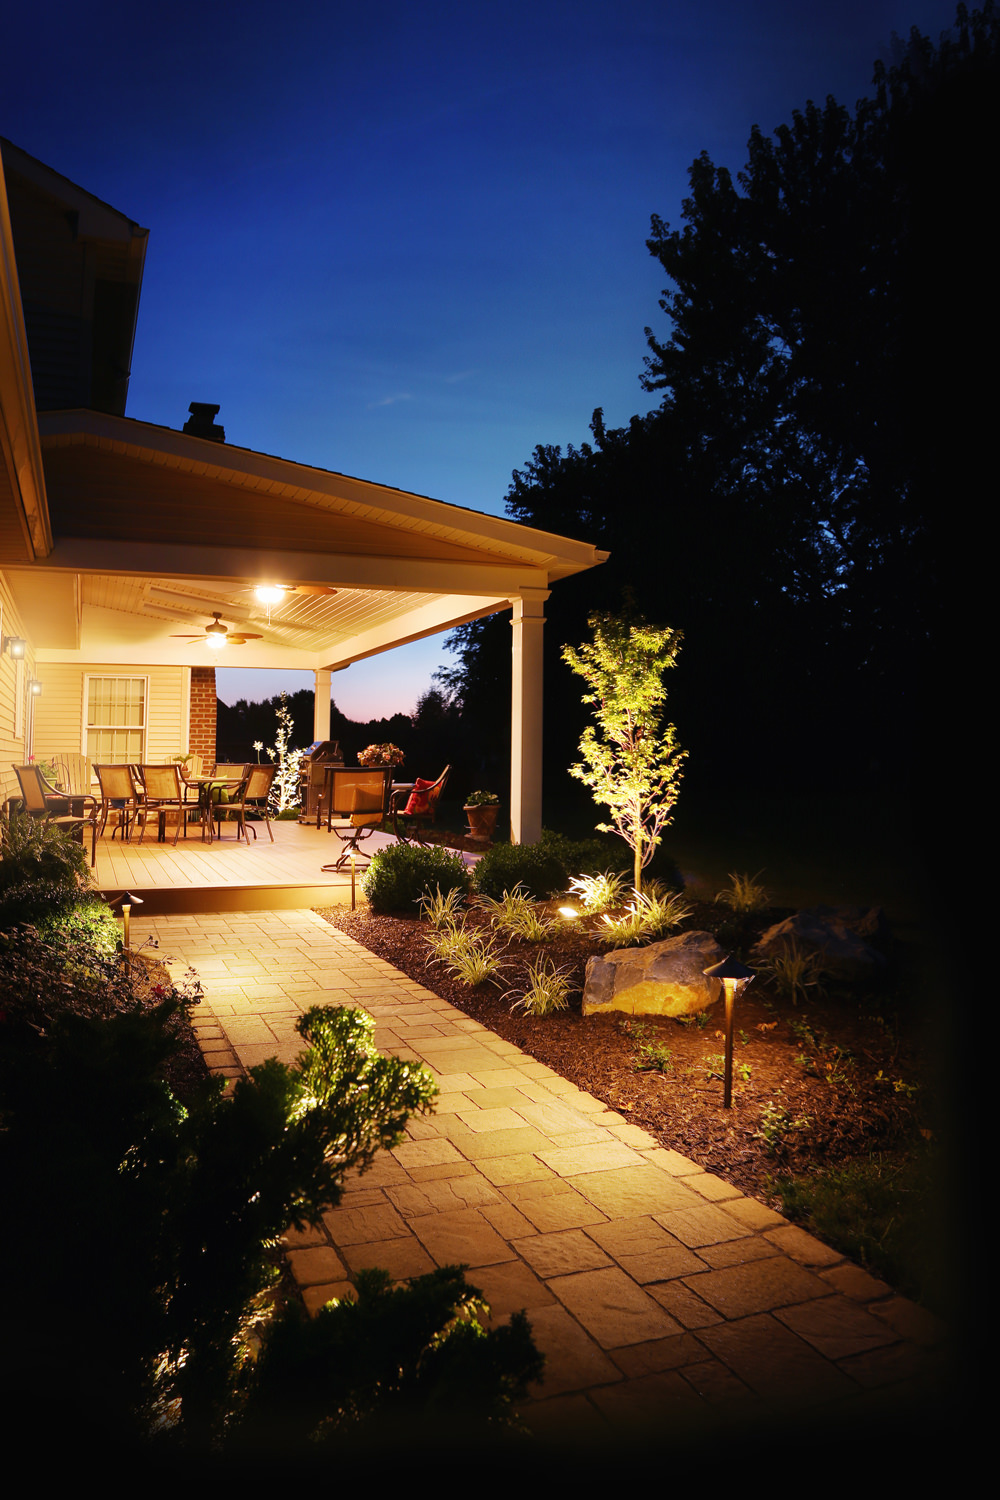 The new paver walkway, along with perennial landscaping and warm LED landscape lighting creates the perfect soft and welcoming complement to the space.